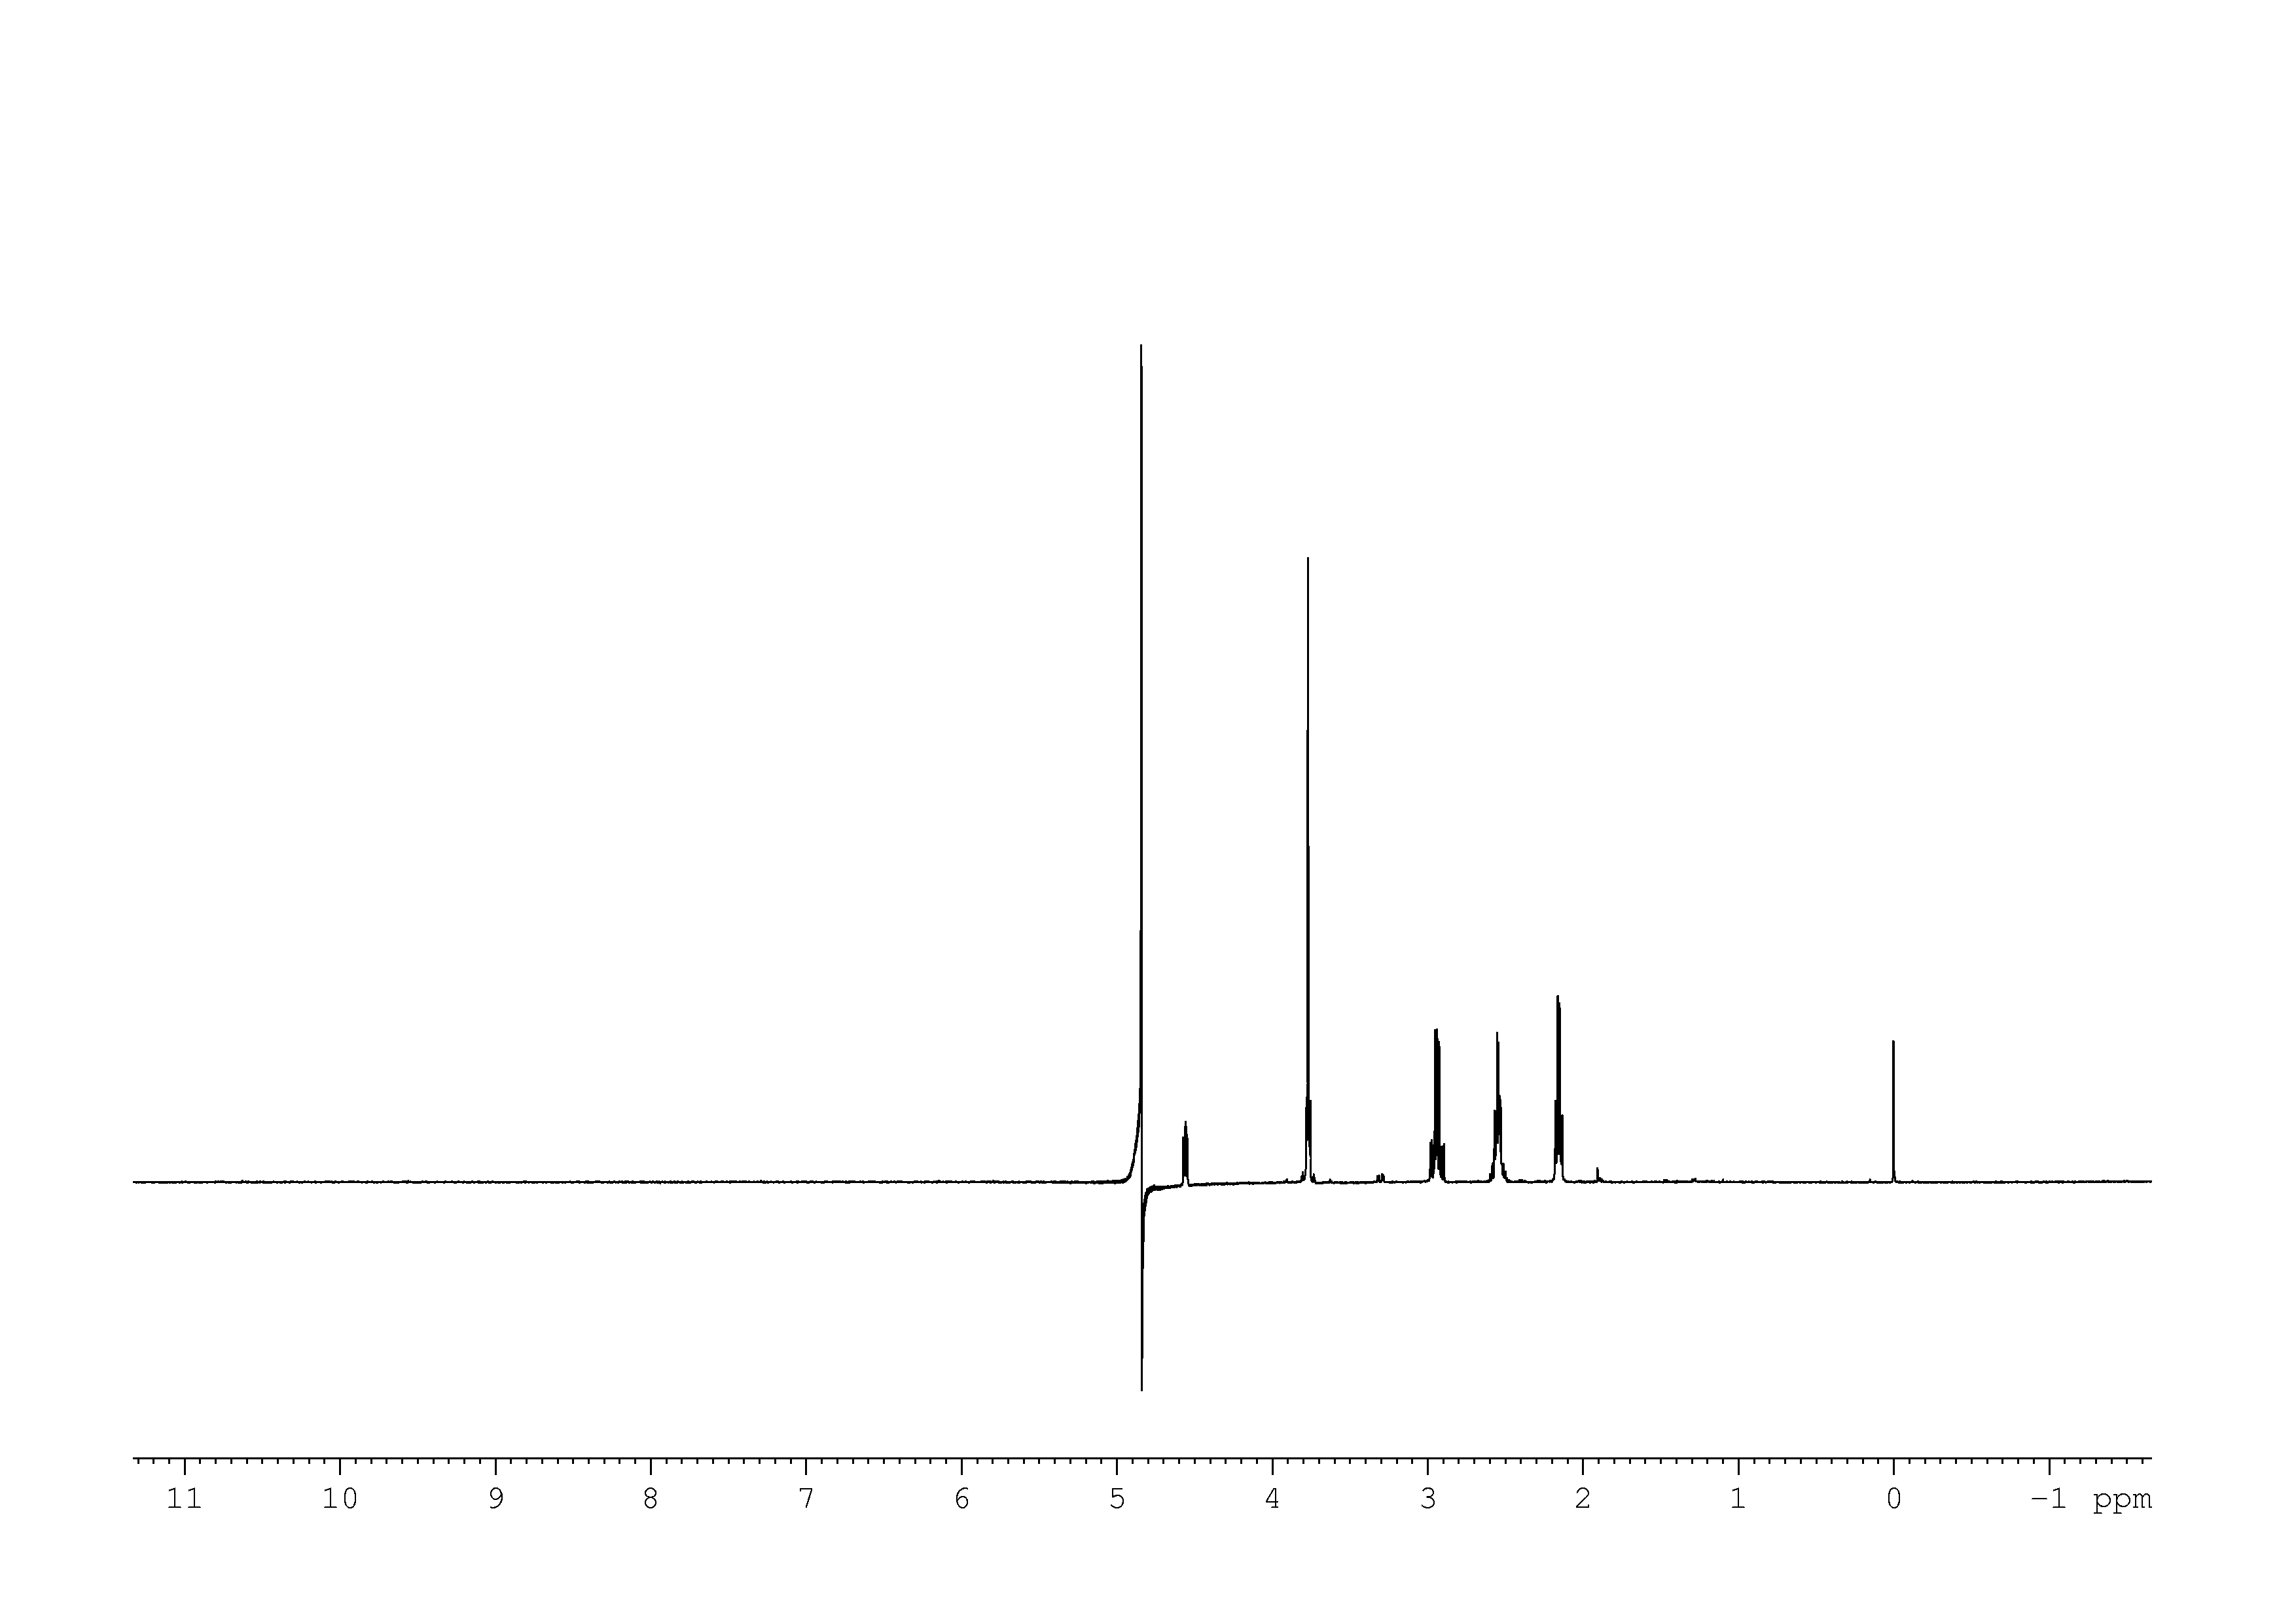 1D 1H, 0.5 mM, 7.4 spectrum for L-Glutathione reduced